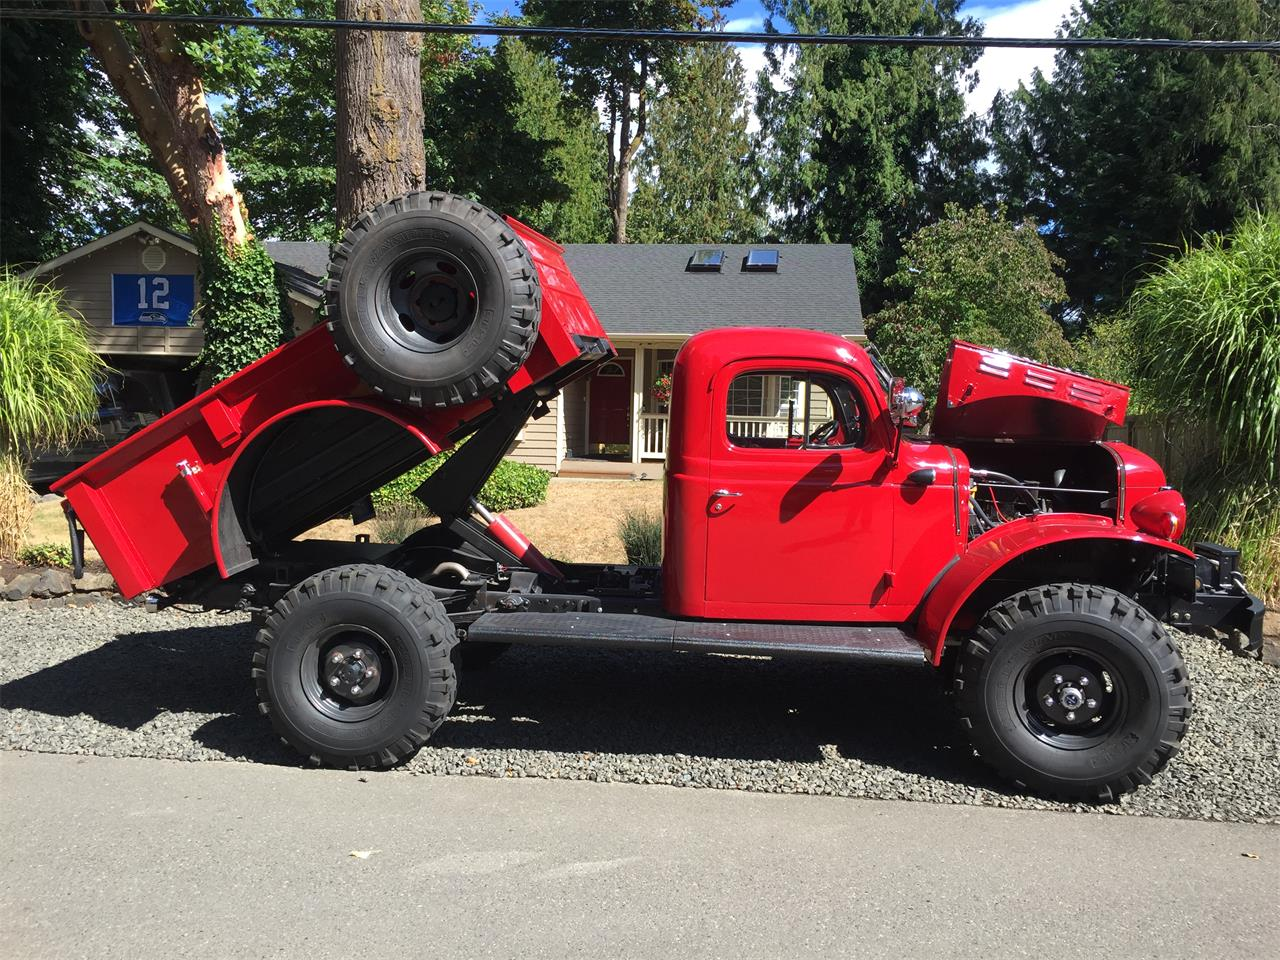 Large Picture of '49 Dodge Power Wagon located in Washington - $55,000.00 - JS10